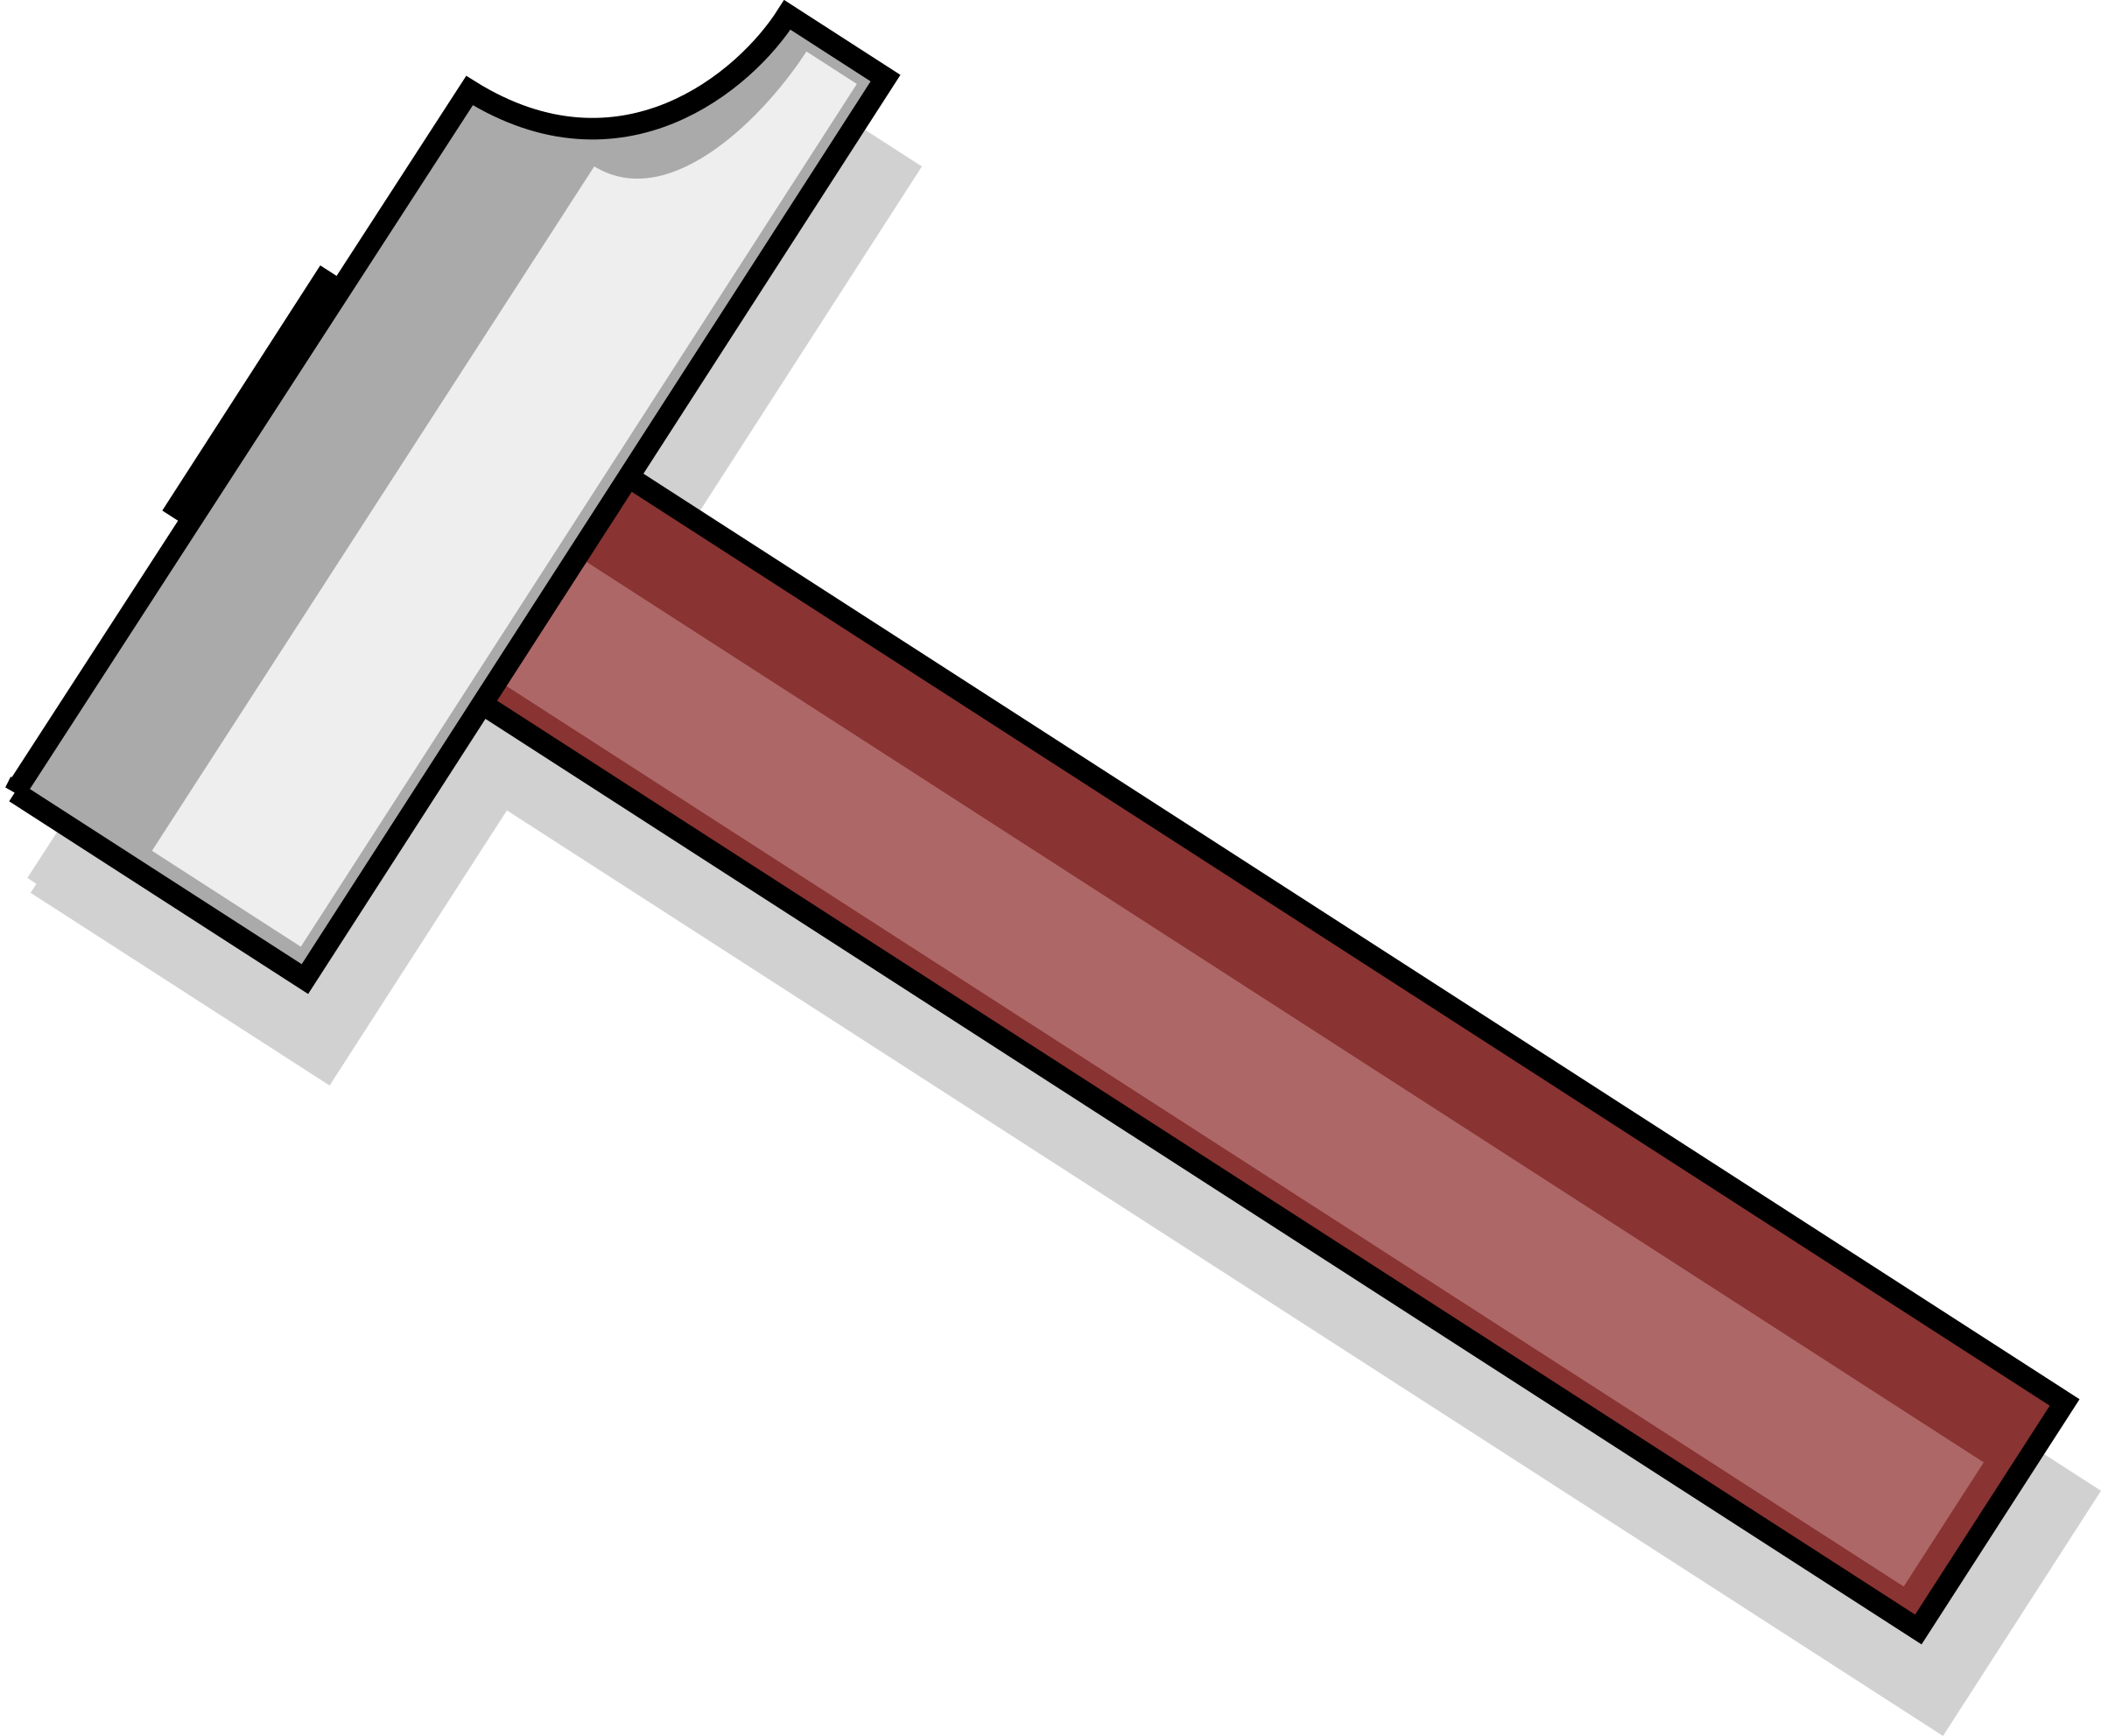 Hammer by PeterM